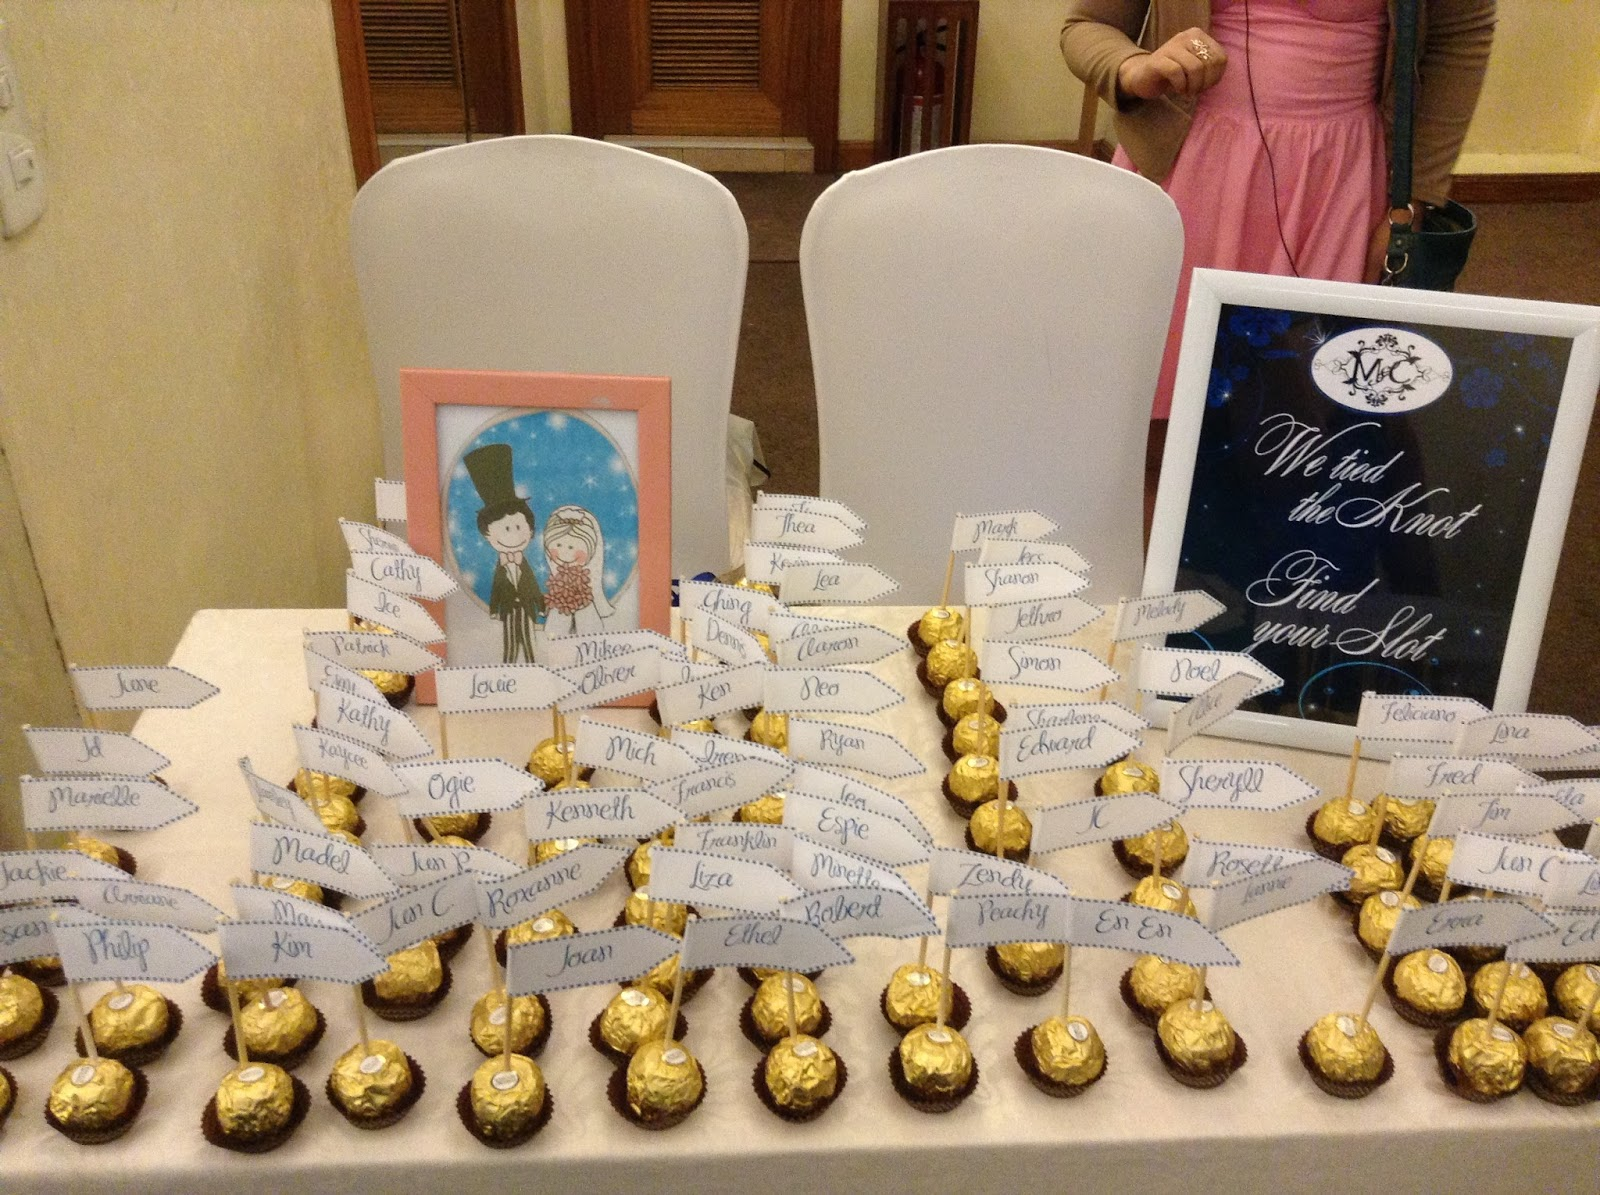 Darlene Tan - Salazar: Of Sweets and Intimate Weddings